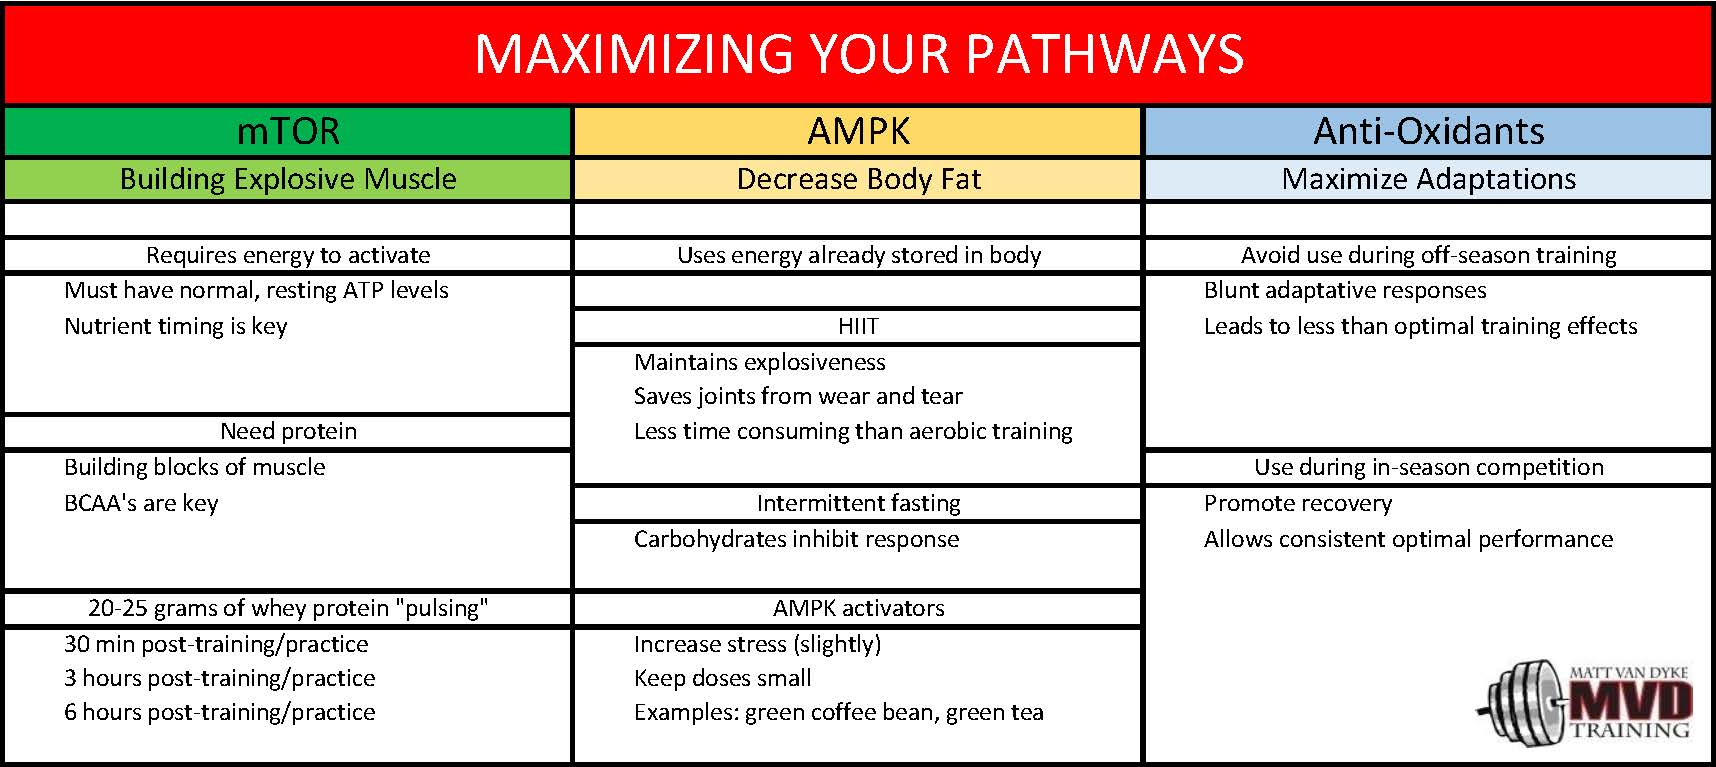 Maximizing Your Pathways